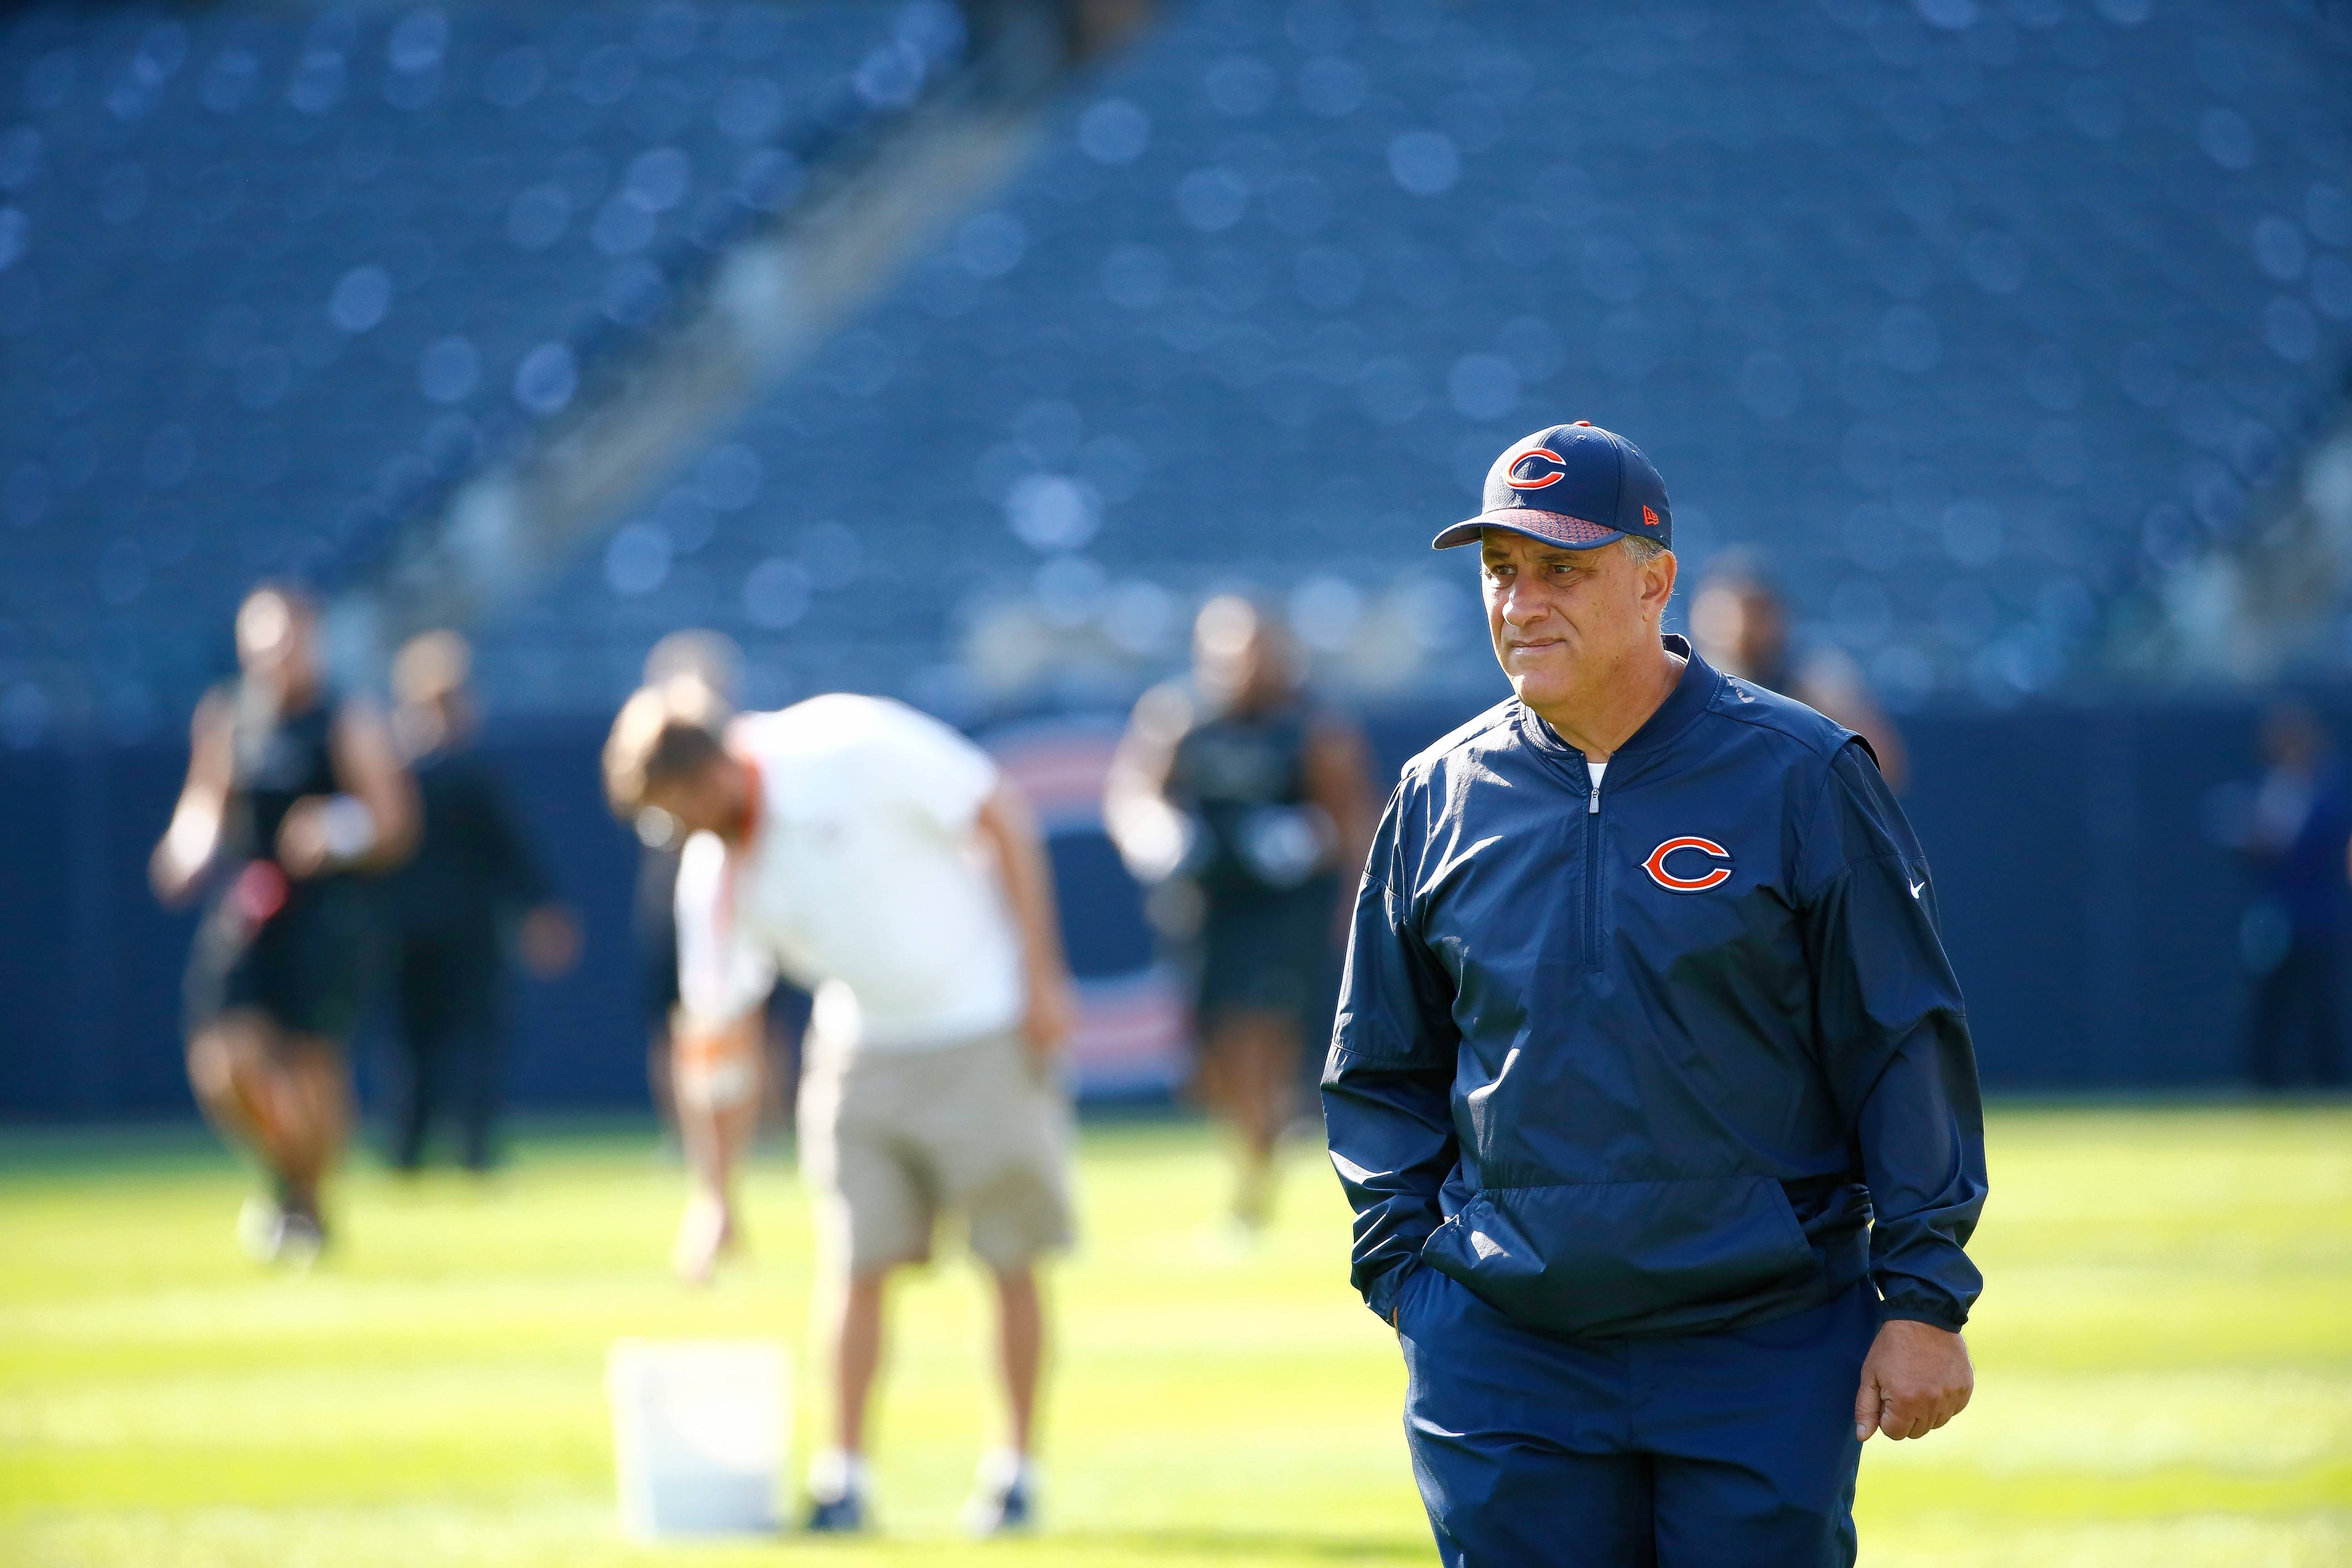 Chicago Bears defensive coordinator Vic Fangio walks on the field before an NFL football game against the Atlanta Falcons, Sunday, Sept. 10, 2017, in Chicago.